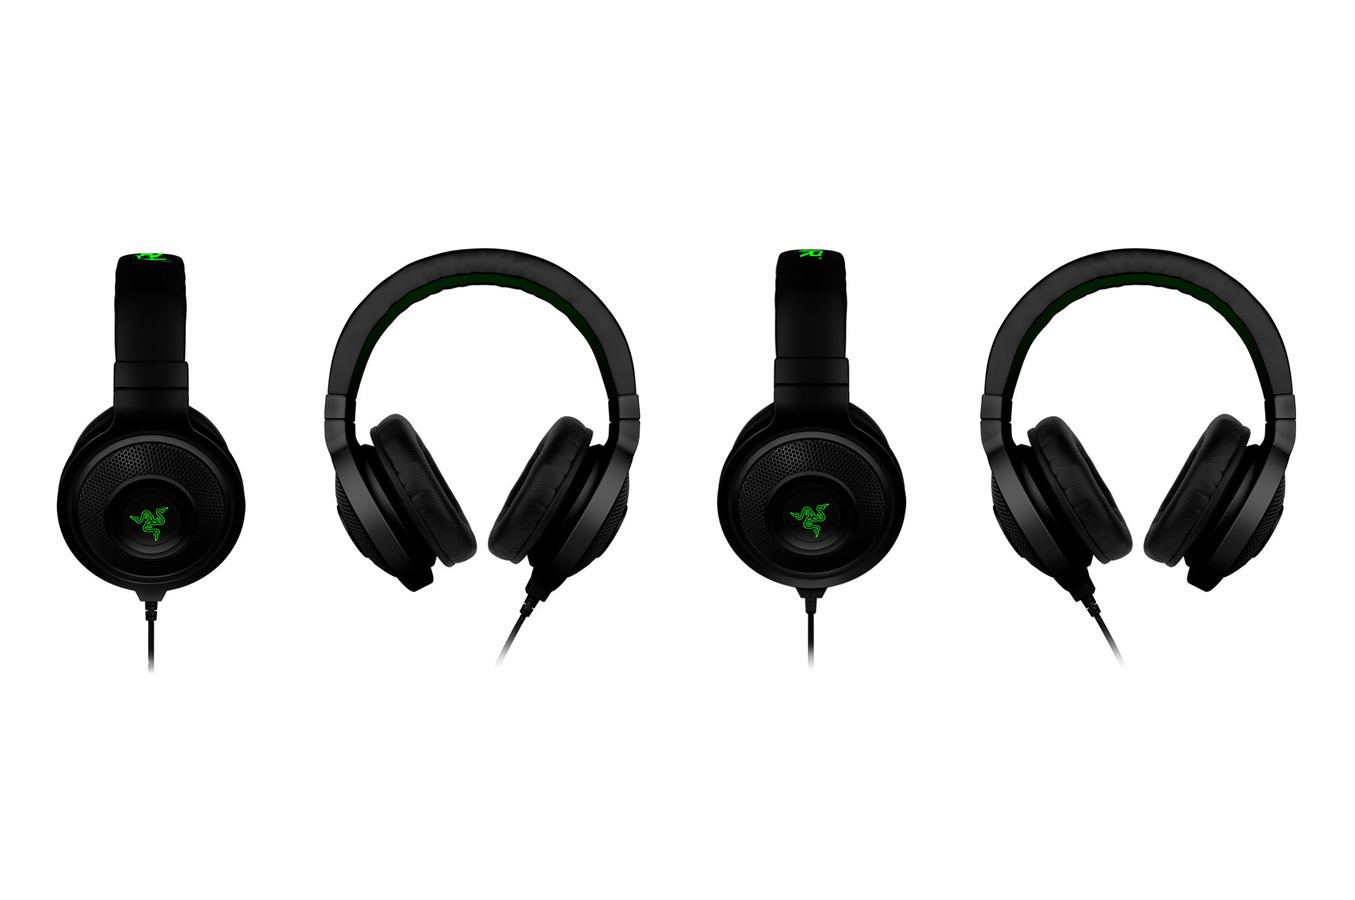 Casque Micro Gamer Razer Kraken Noir Darty